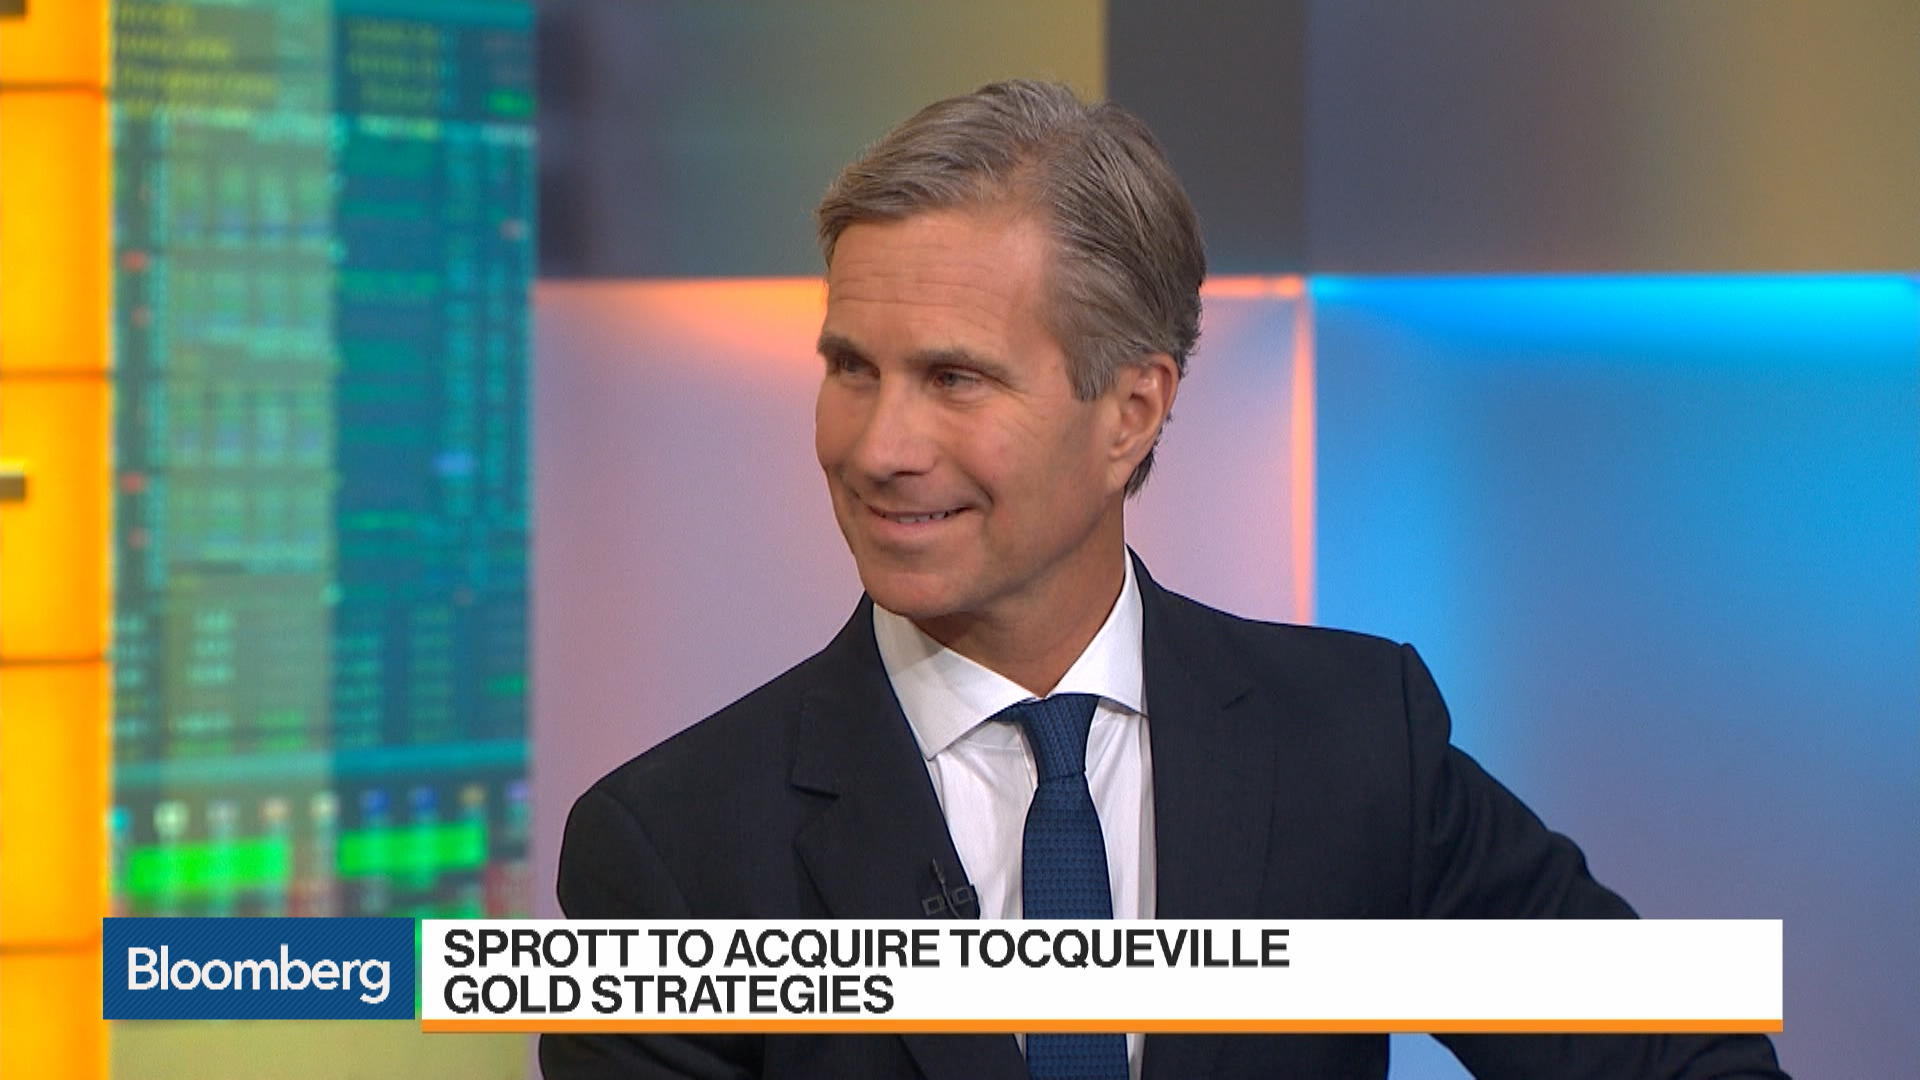 Gold Pullback Not Surprising, Trouble Ahead for Economy: Peter Grosskopf